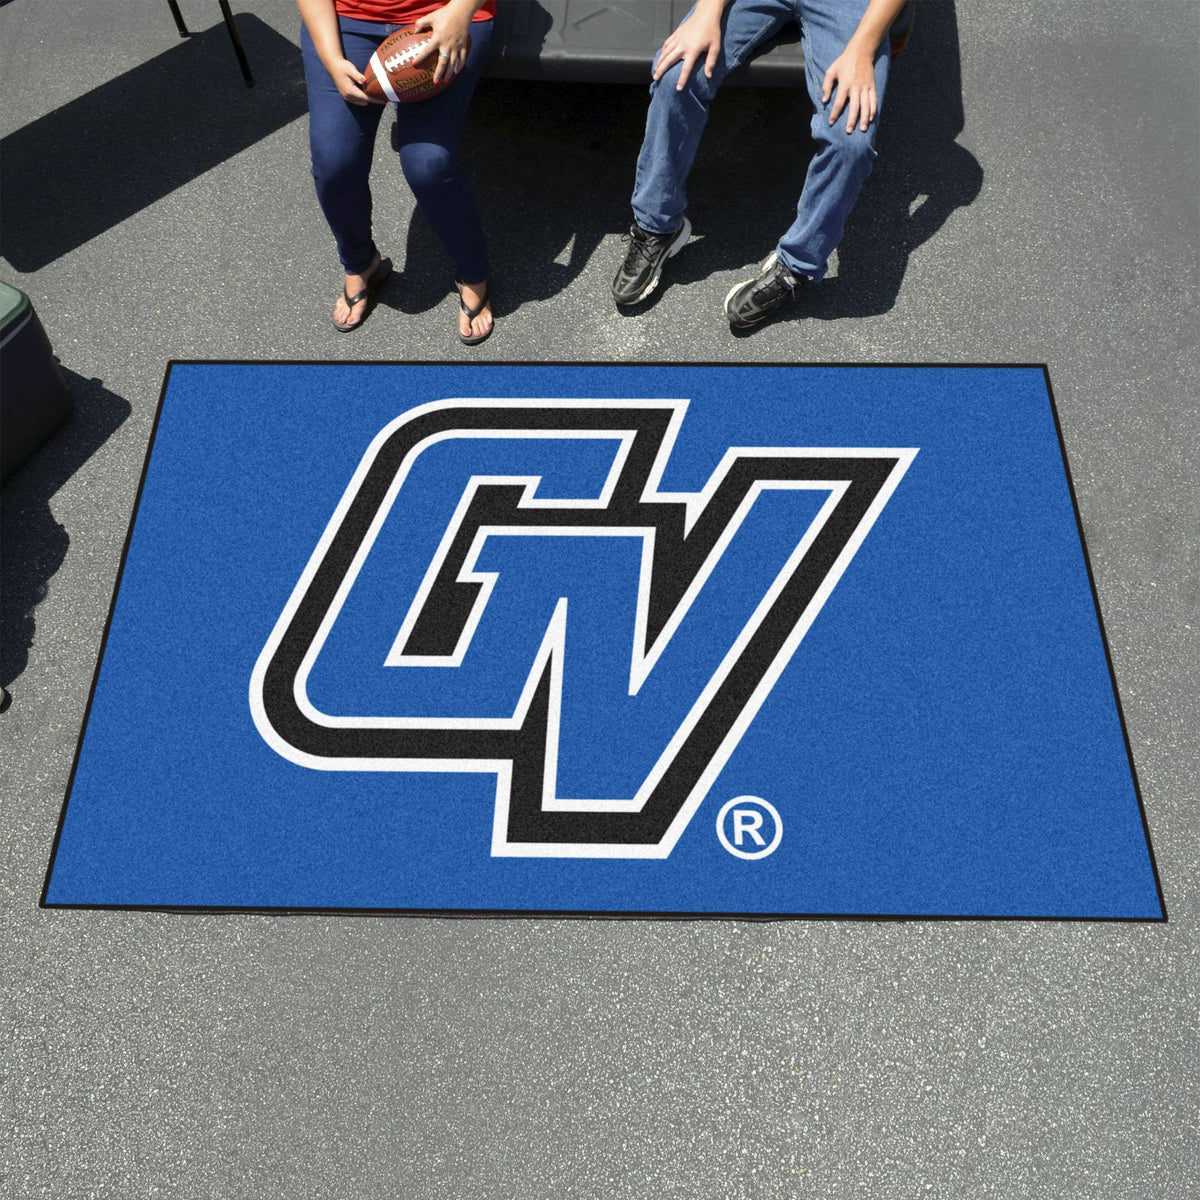 Collegiate - Ulti-Mat: A - L Collegiate Mats, Rectangular Mats, Ulti-Mat, Collegiate, Home Fan Mats Grand Valley State